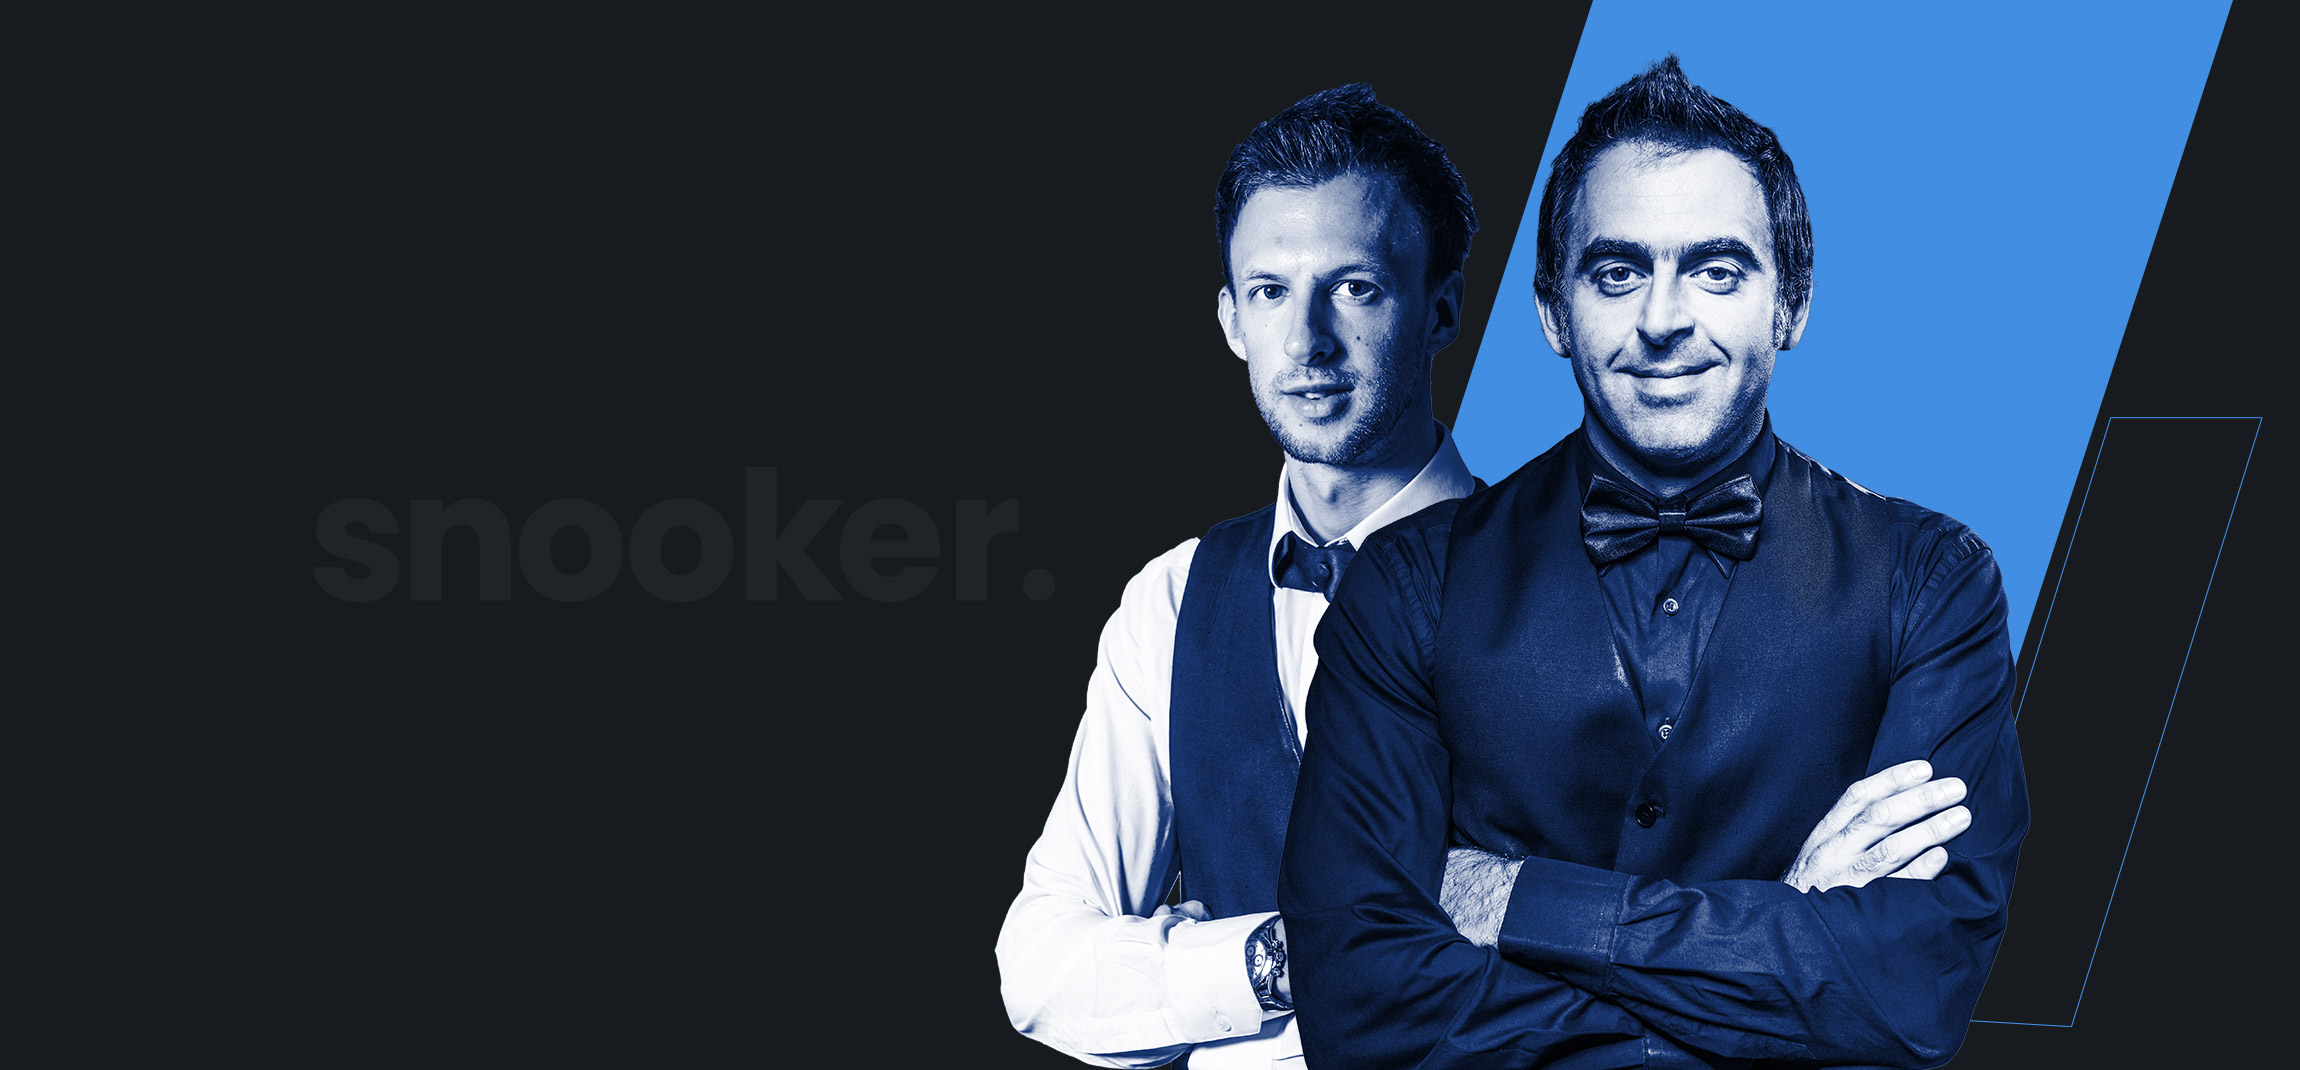 We are Matchroom Sport - We are Snooker